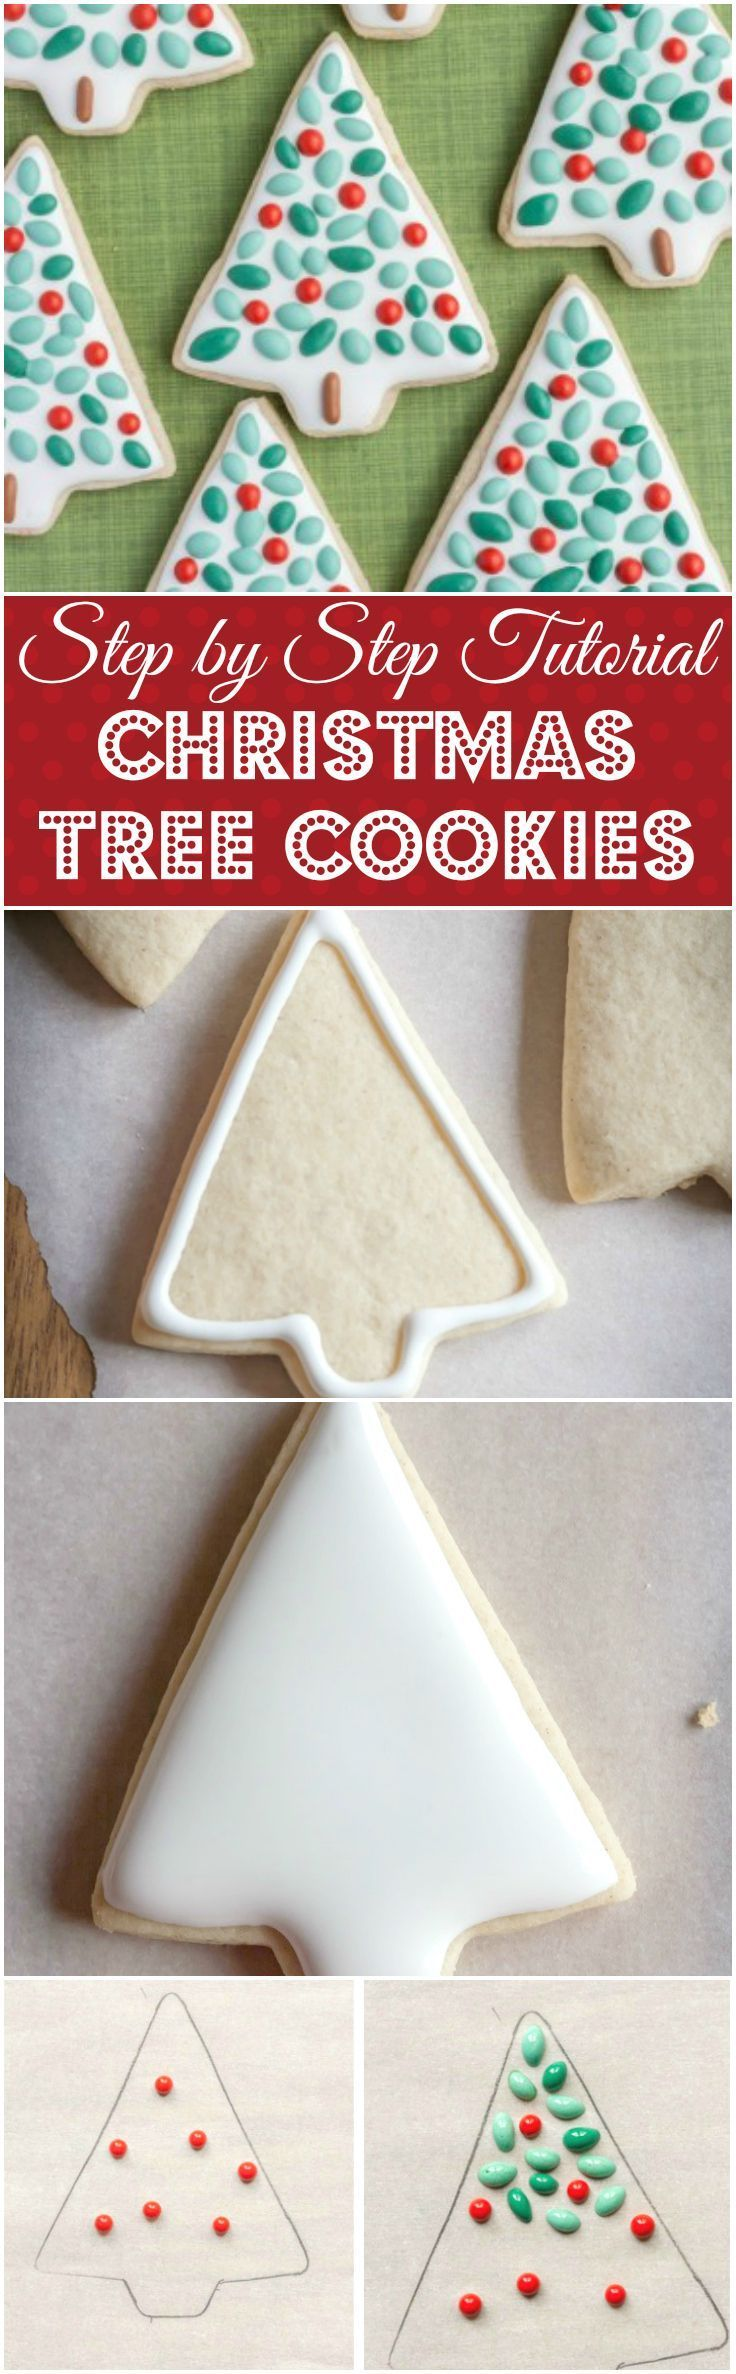 How to Decorate Christmas Cookies with Royal Icing Recipe ...